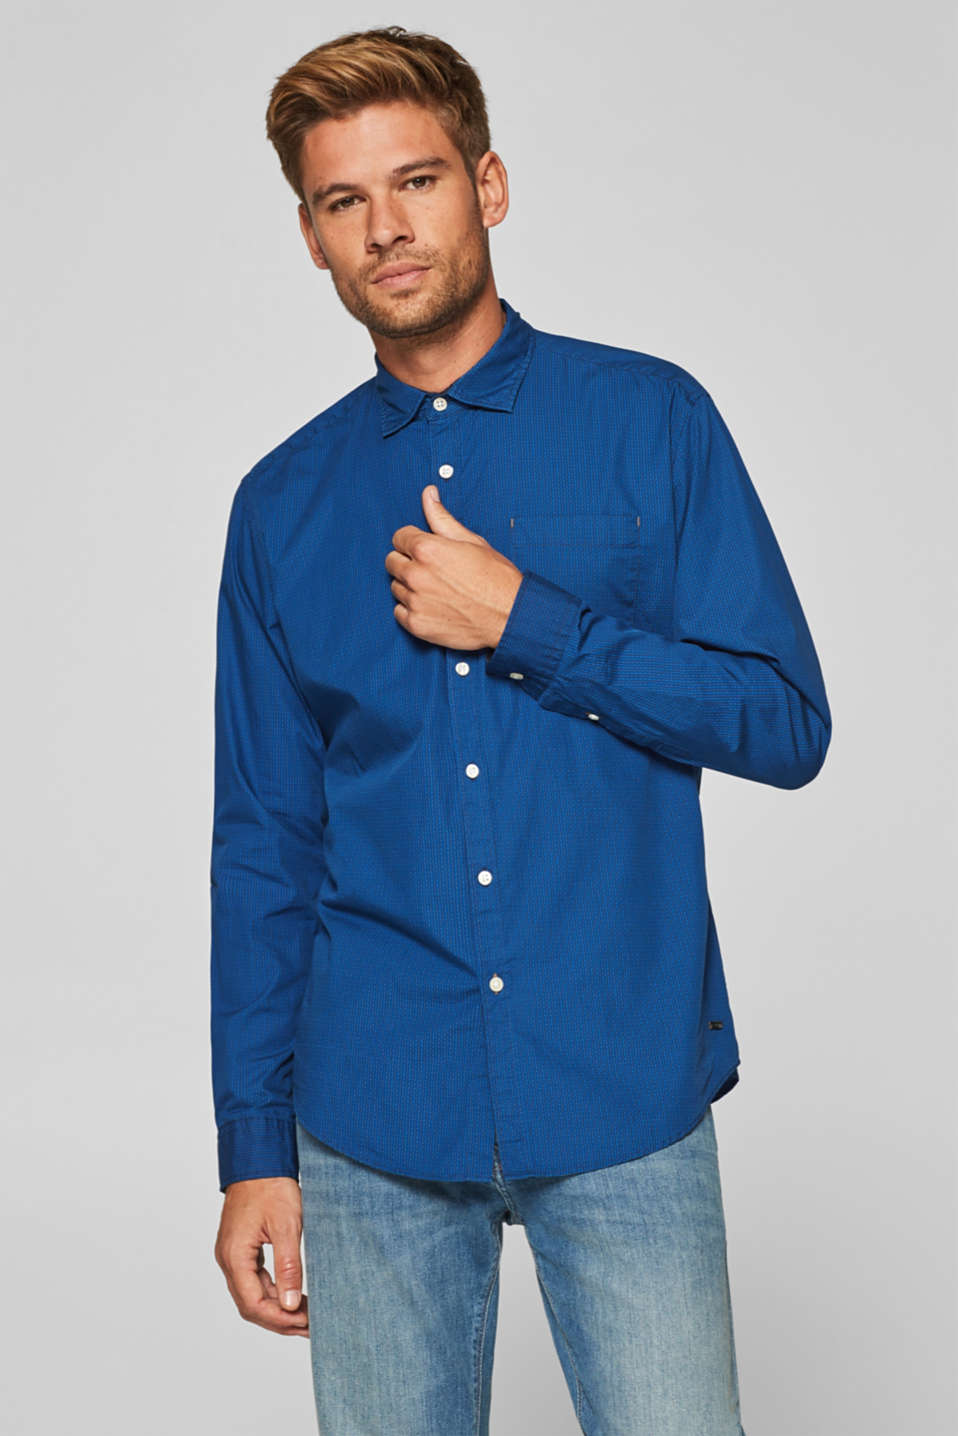 Esprit - Shirt with an all-over print, 100% cotton